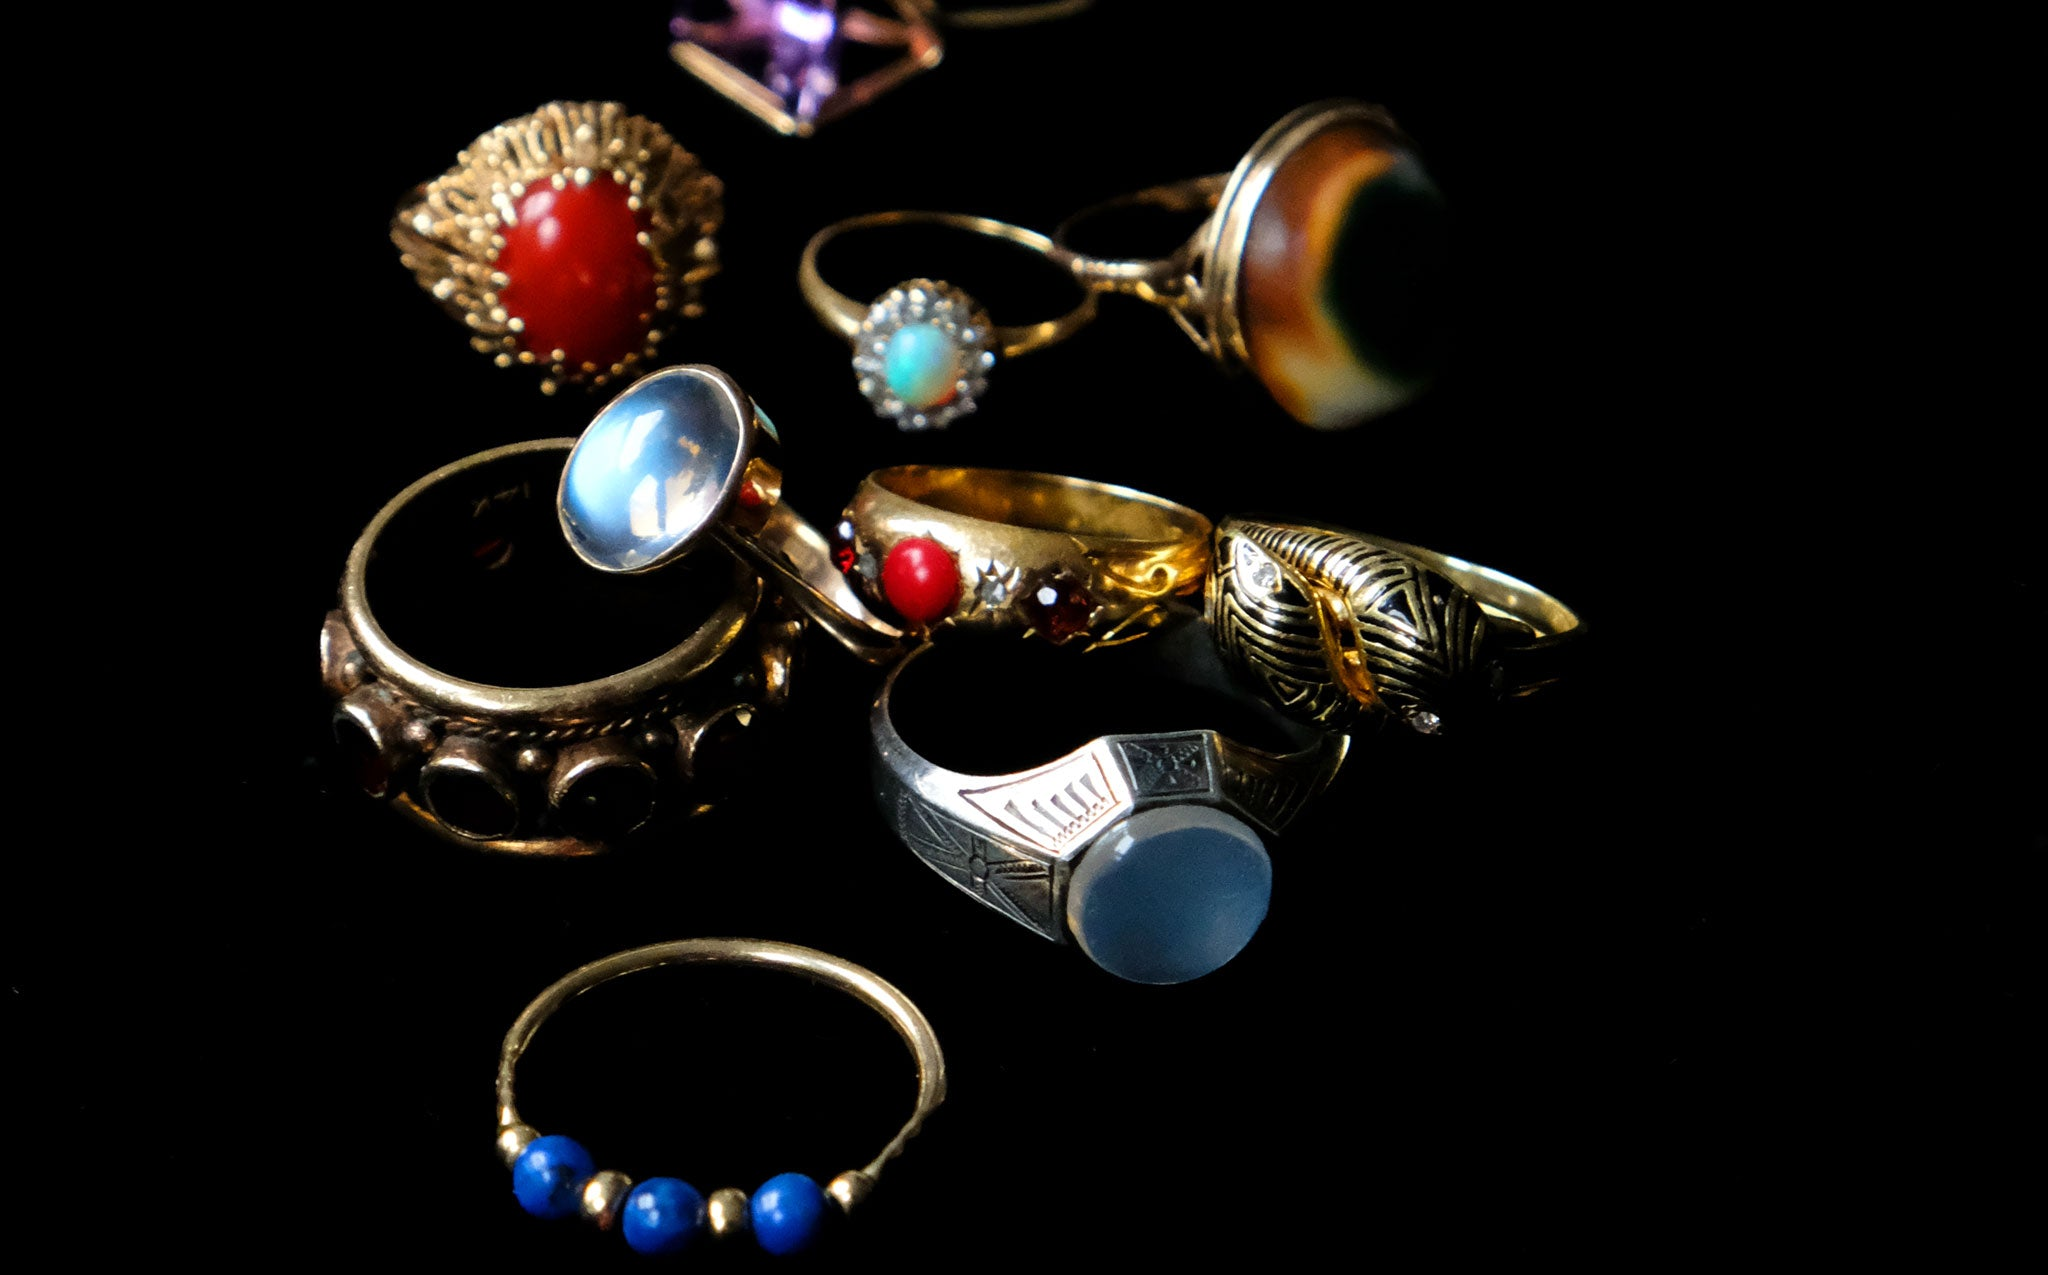 The Protective Power of Jewels